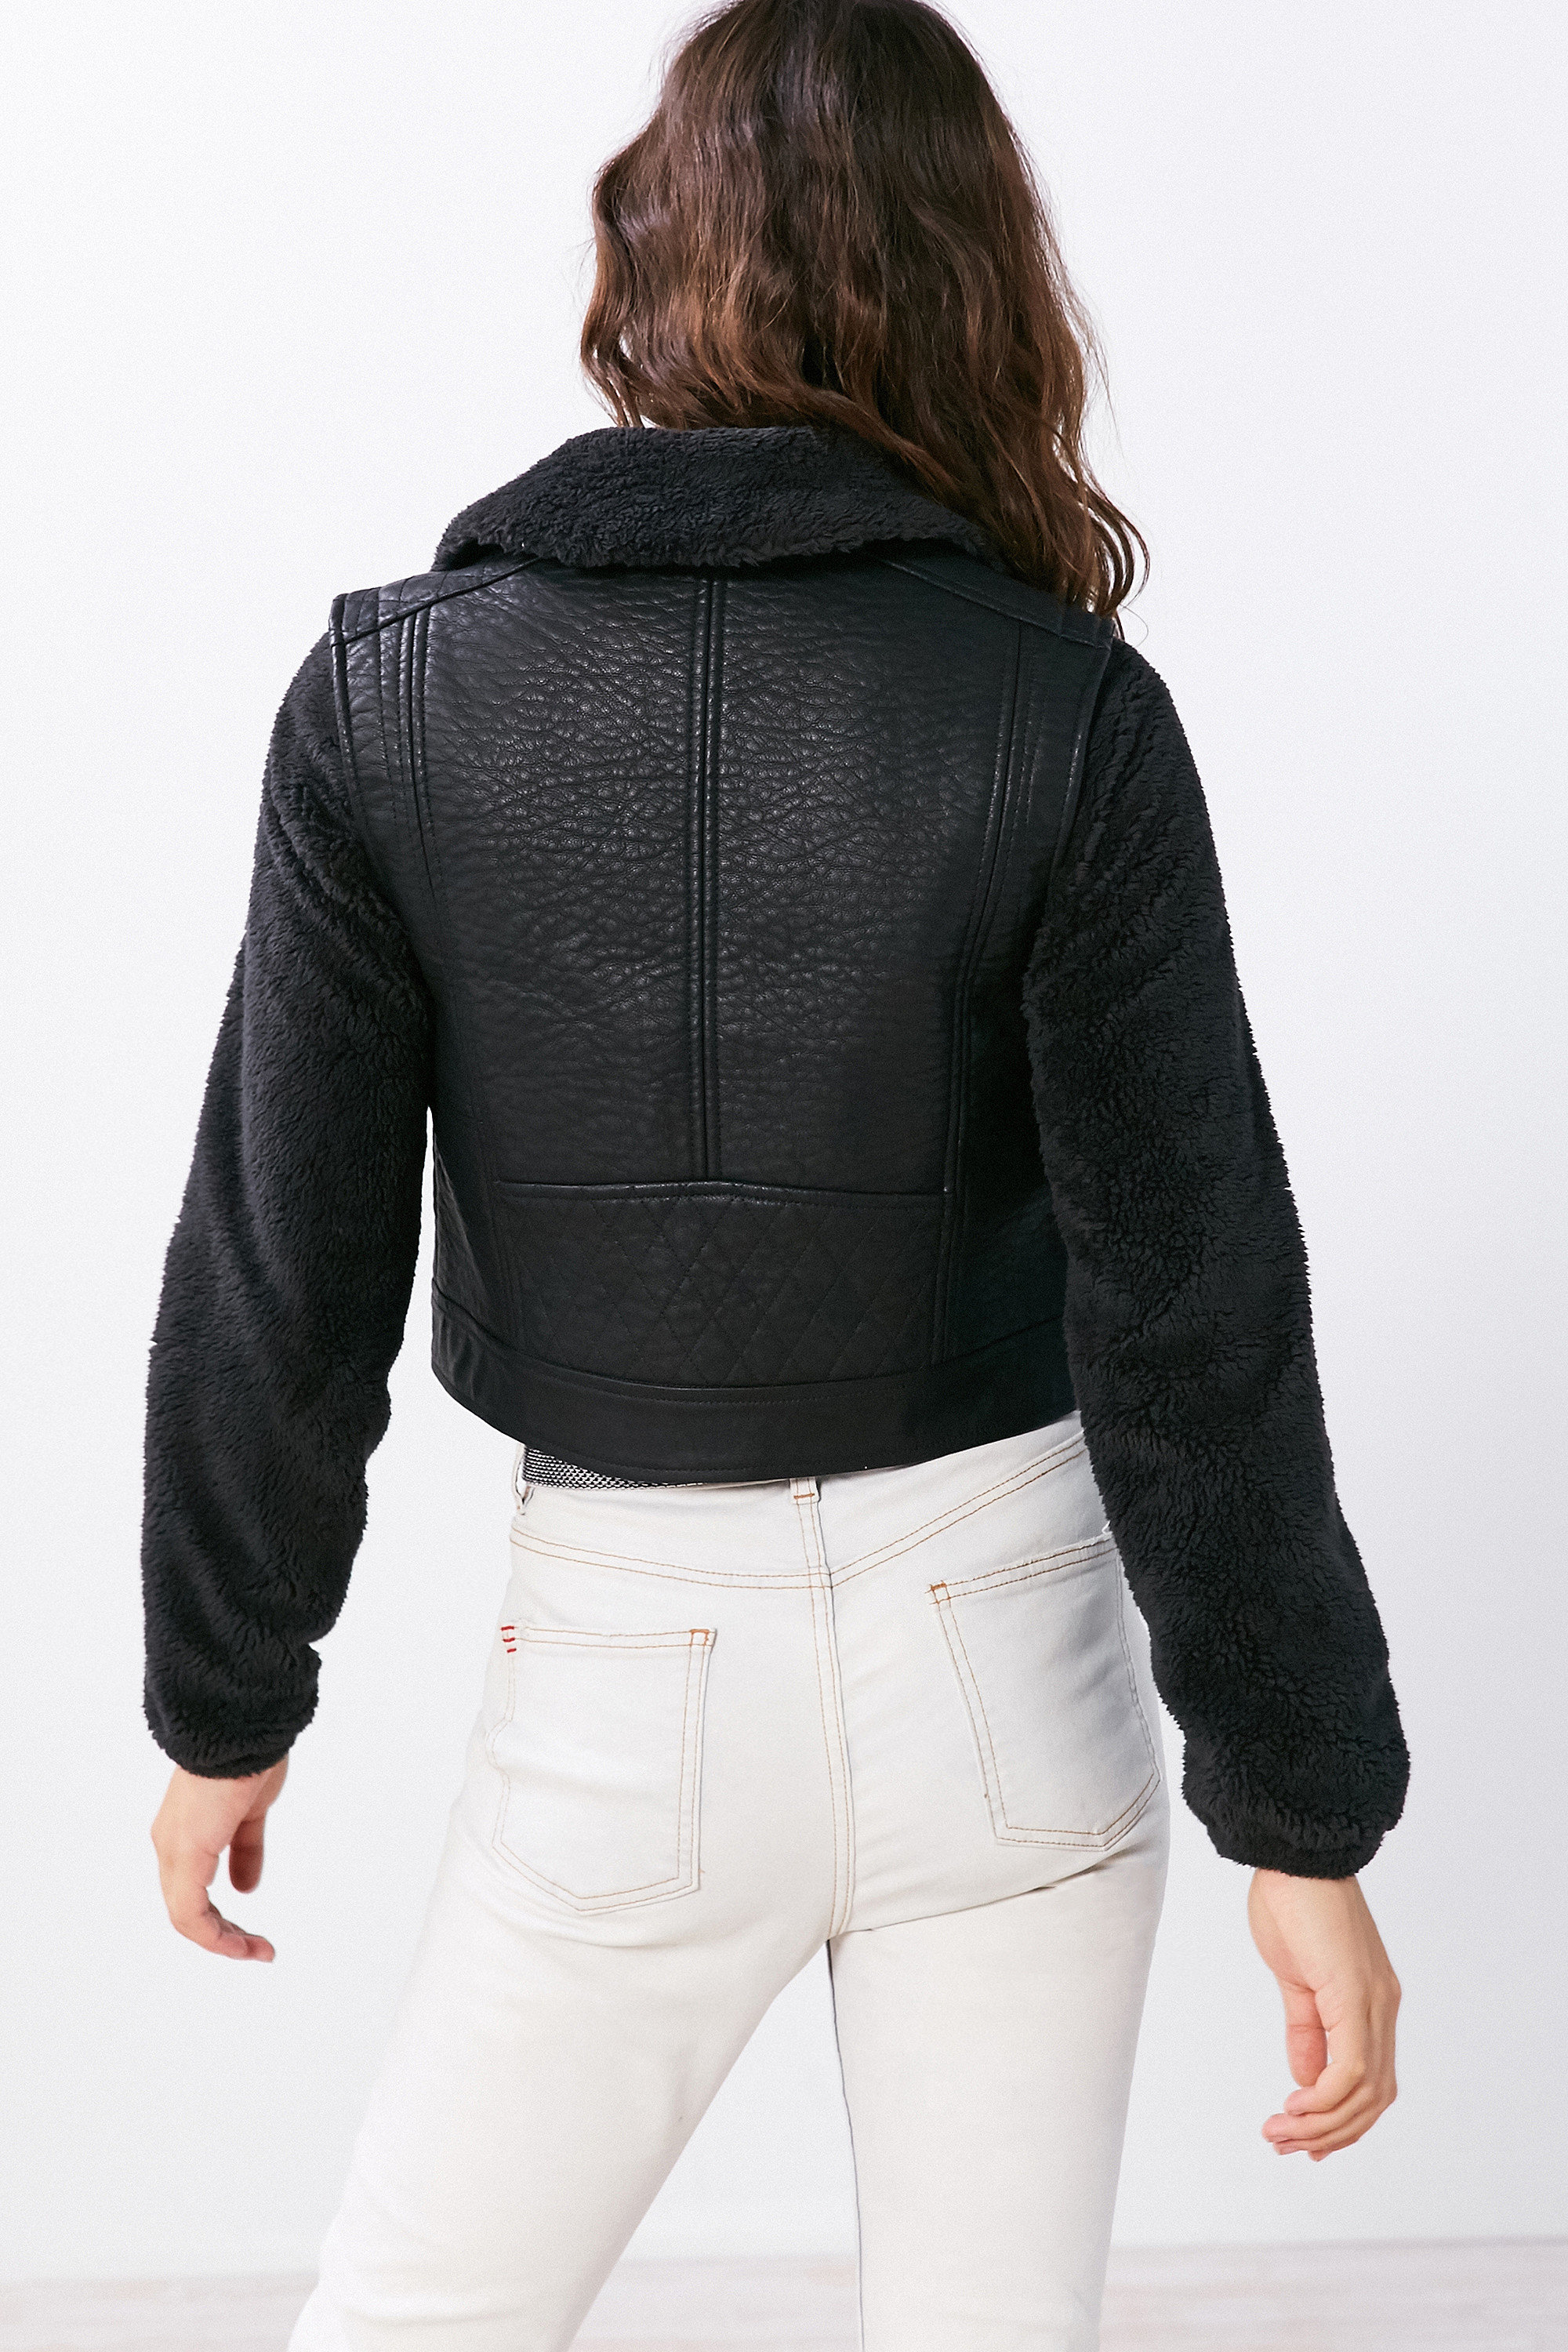 Style + Design person clothing hood jacket leather outerwear denim sleeve pocket textile zipper collar leather jacket material dressed arm